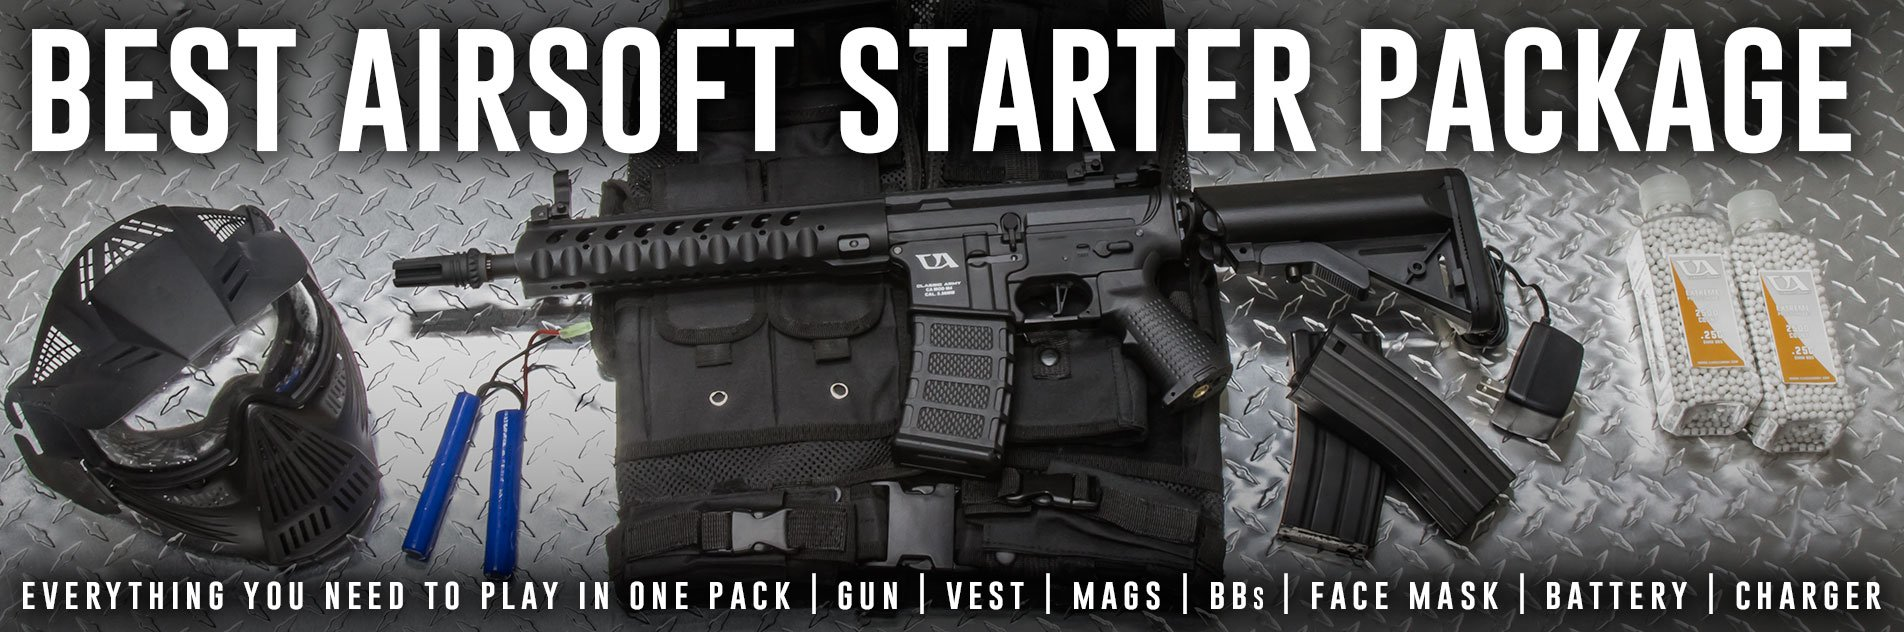 Best Airsoft Starter Package